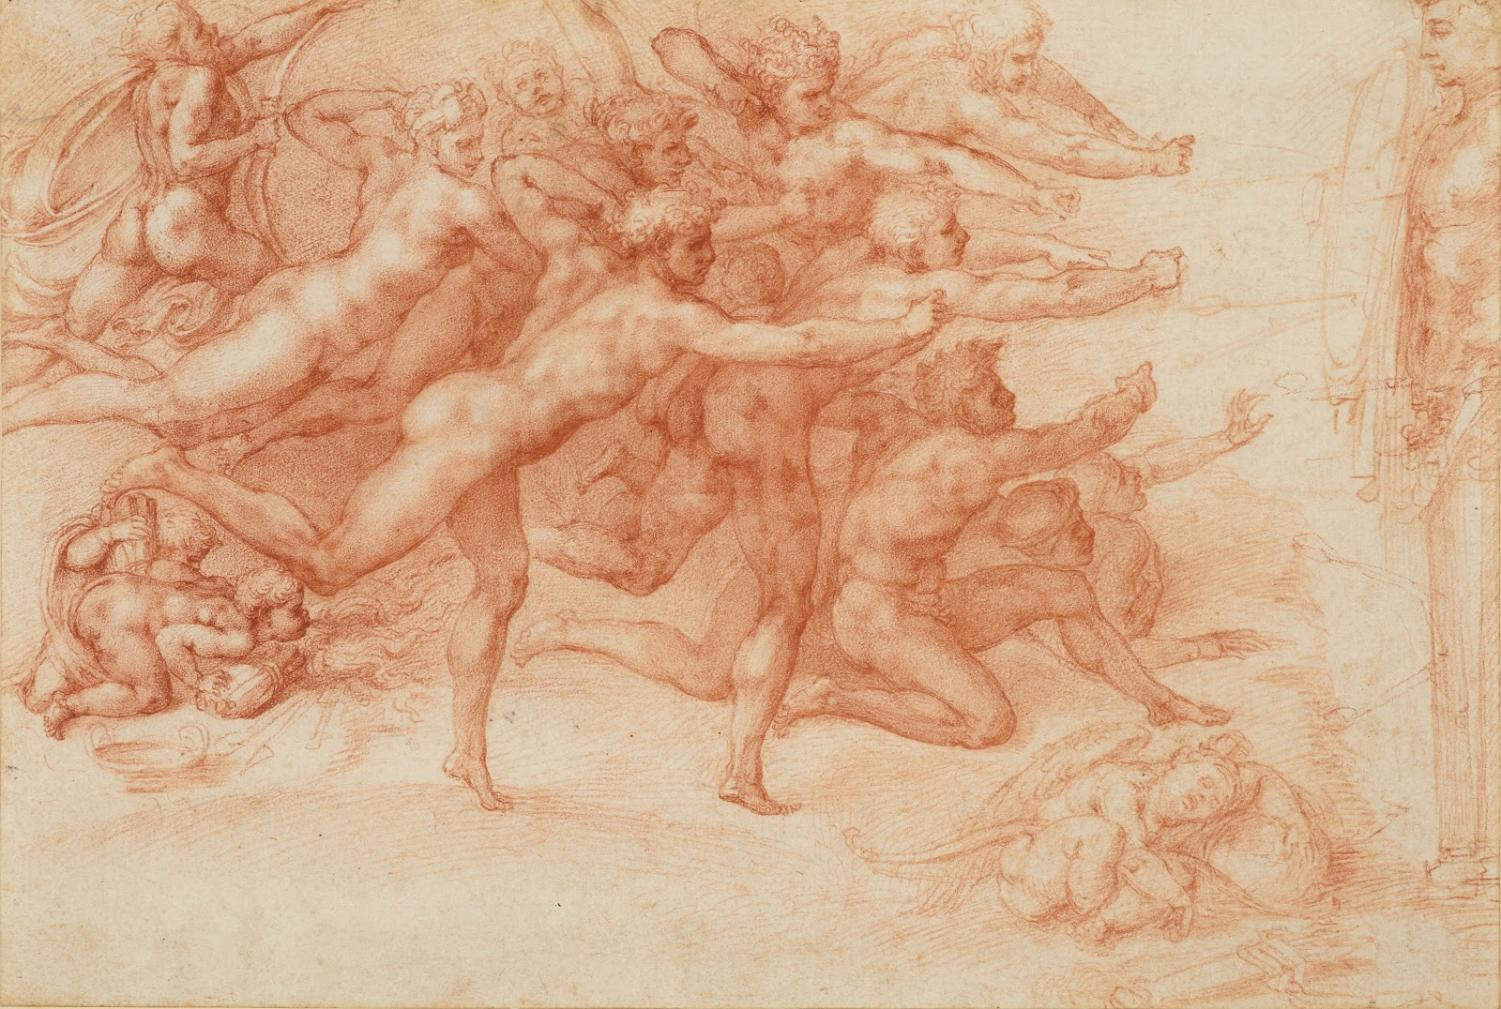 Image courtesy of The Metropolitan Museum of Art Michelangelo Buonarroti (Italian, Caprese 1475–1564 Rome)  Archers Shooting at a Herm 1530–33  Drawing, red chalk; 8 5/8 x 12 11/16 in. (21.9 x 32.3 cm)  ROYAL COLLECTION TRUST / © HER MAJESTY QUEEN  ELIZABETH II 2017,  www.royalcollection.org.uk